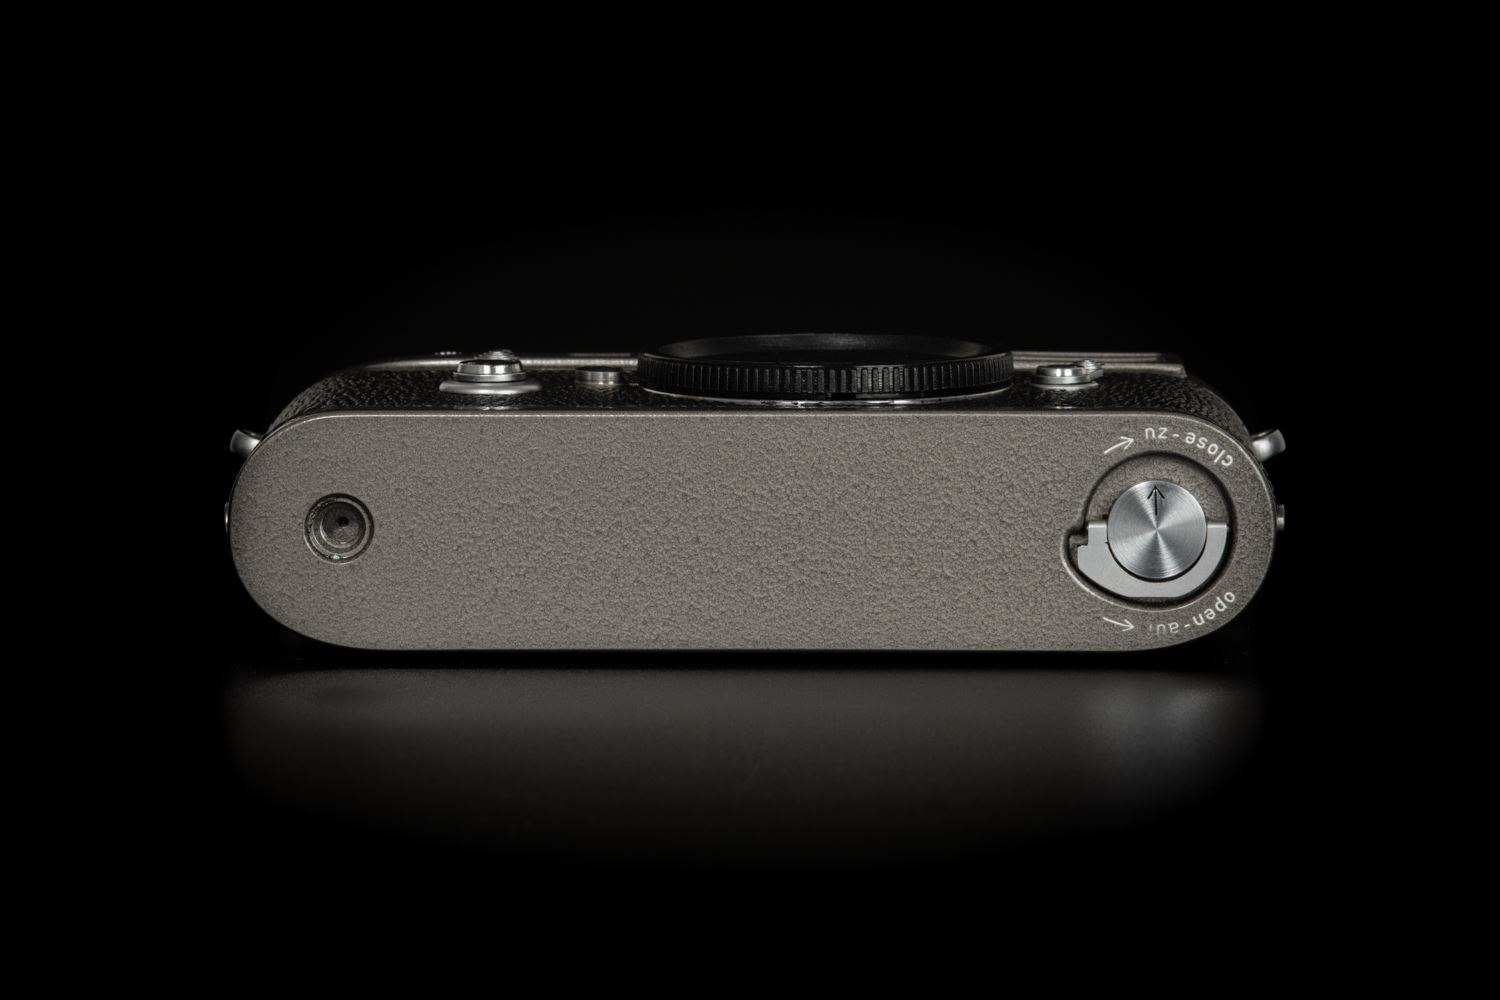 Picture of Leica M2 Hammertone Repainted by takahashi studio japan